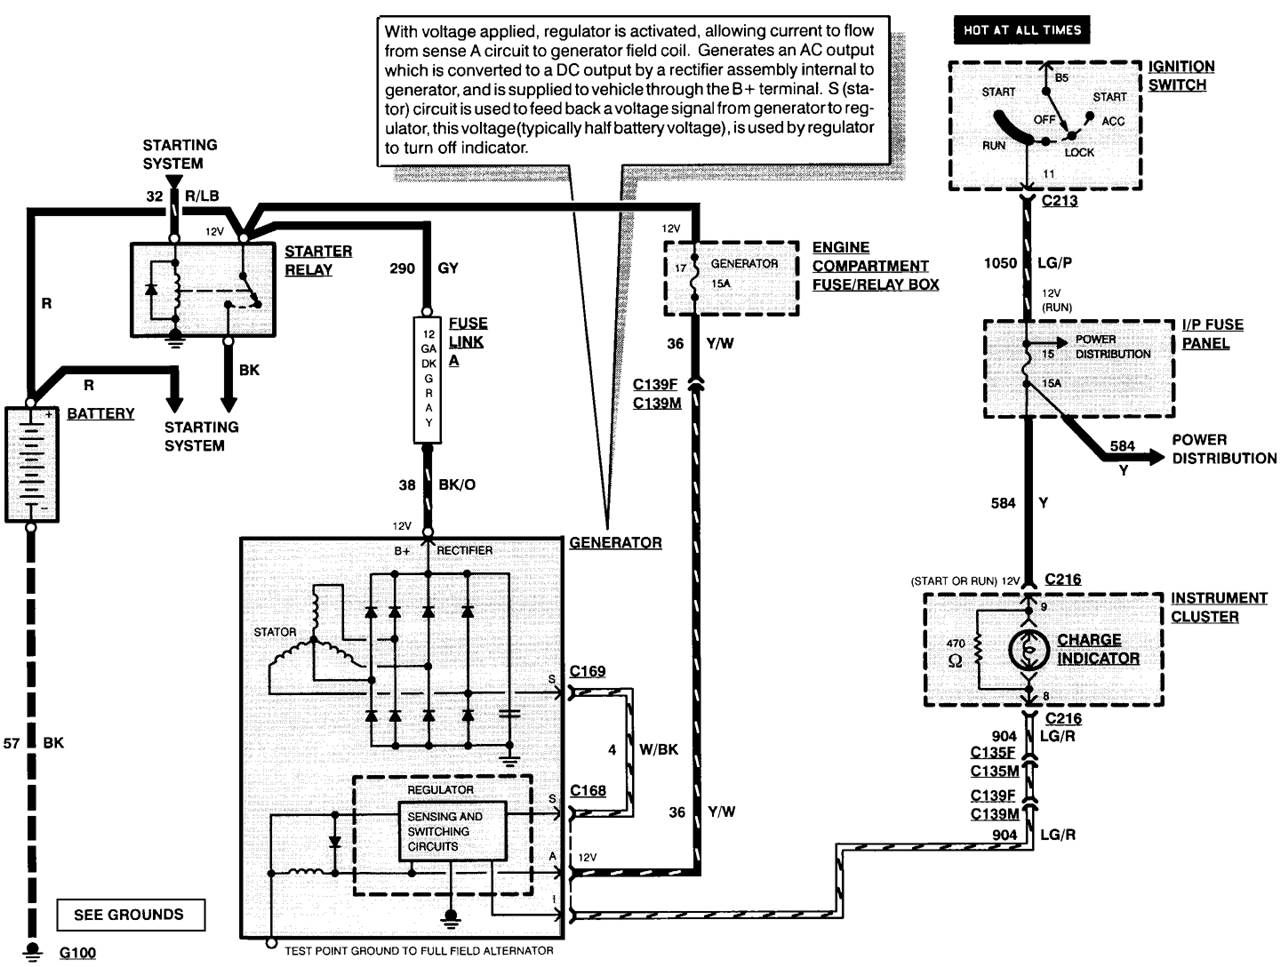 Ford Regulator Wiring Electronic Diagrams 1978 F 150 Engine Diagram Alternator Carsut Understand Cars And Drive F150